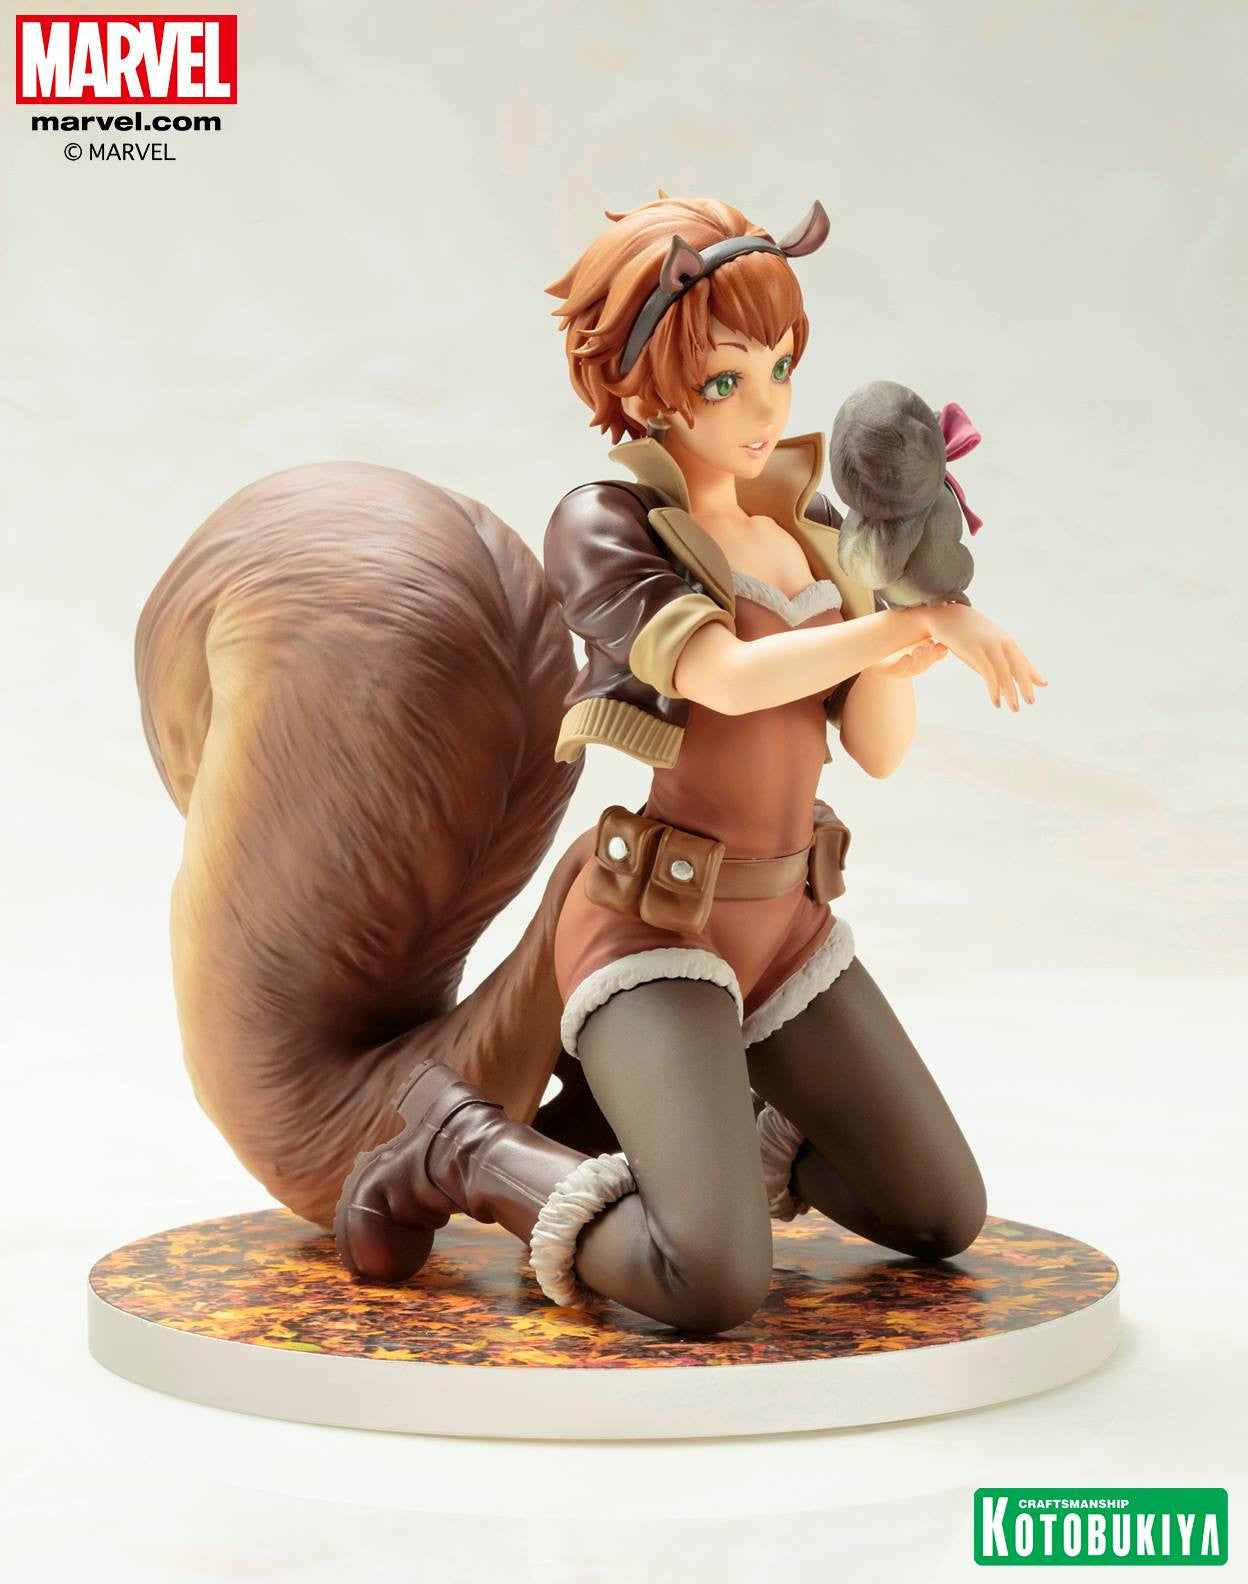 Kotobukiya - Marvel Bishoujo - Squirrel Girl (1/7 Scale) - Marvelous Toys - 3